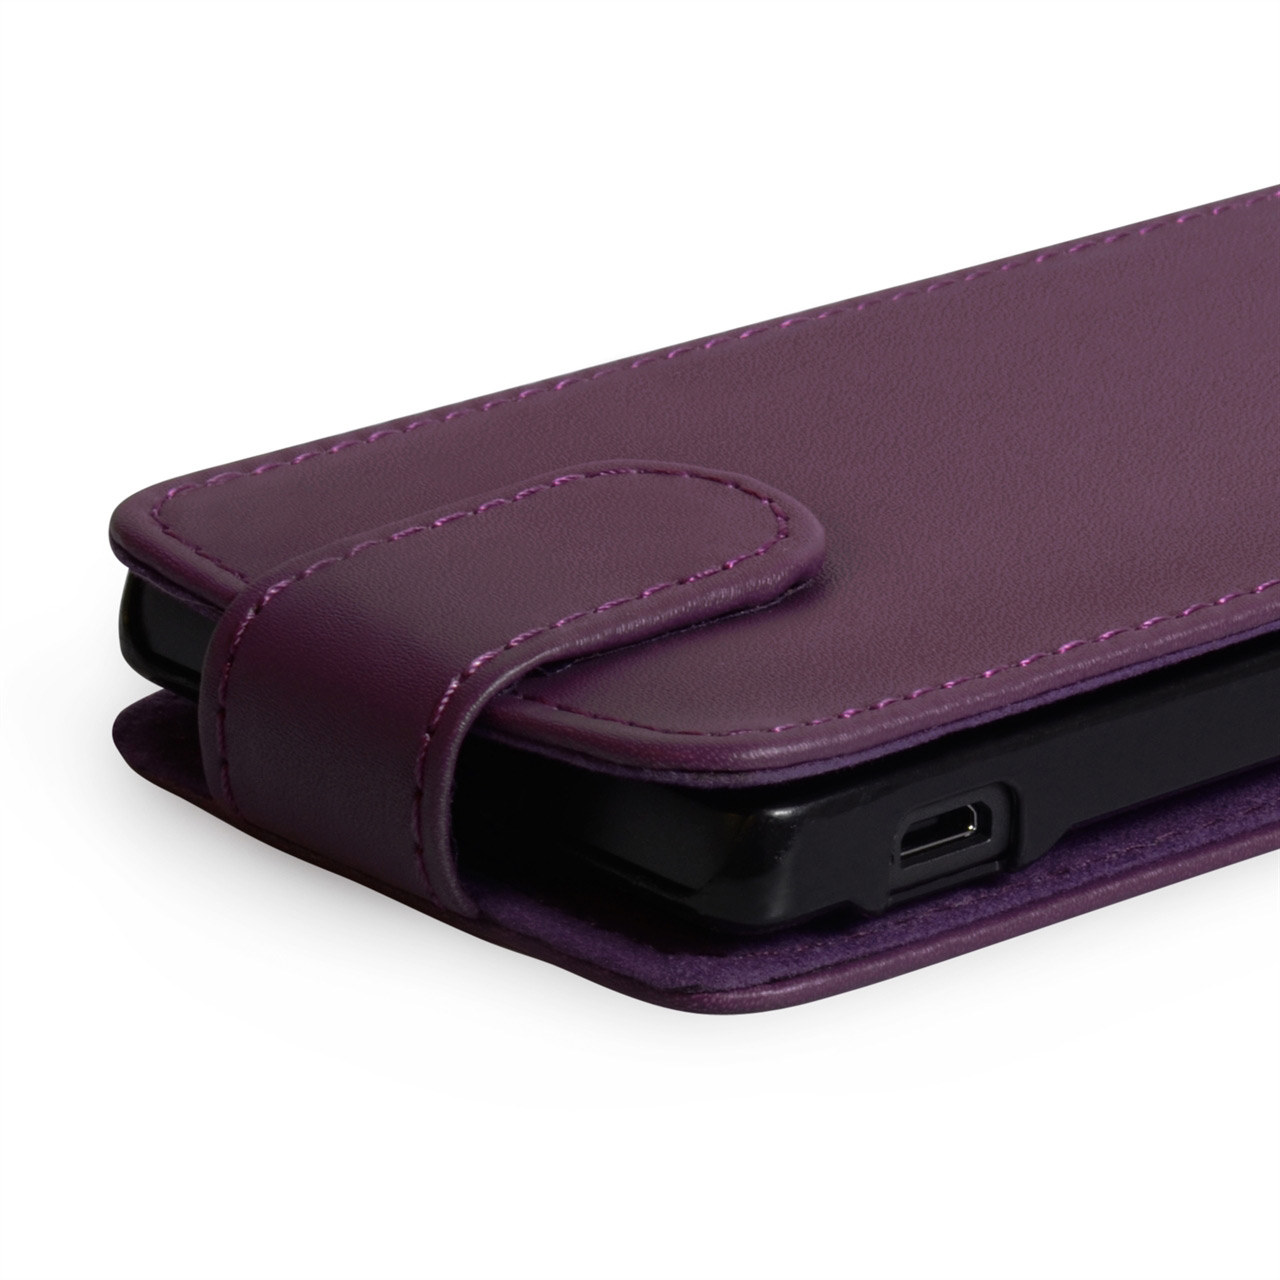 YouSave Accessories Sony Xperia SP Leather-Effect Flip Case - Purple